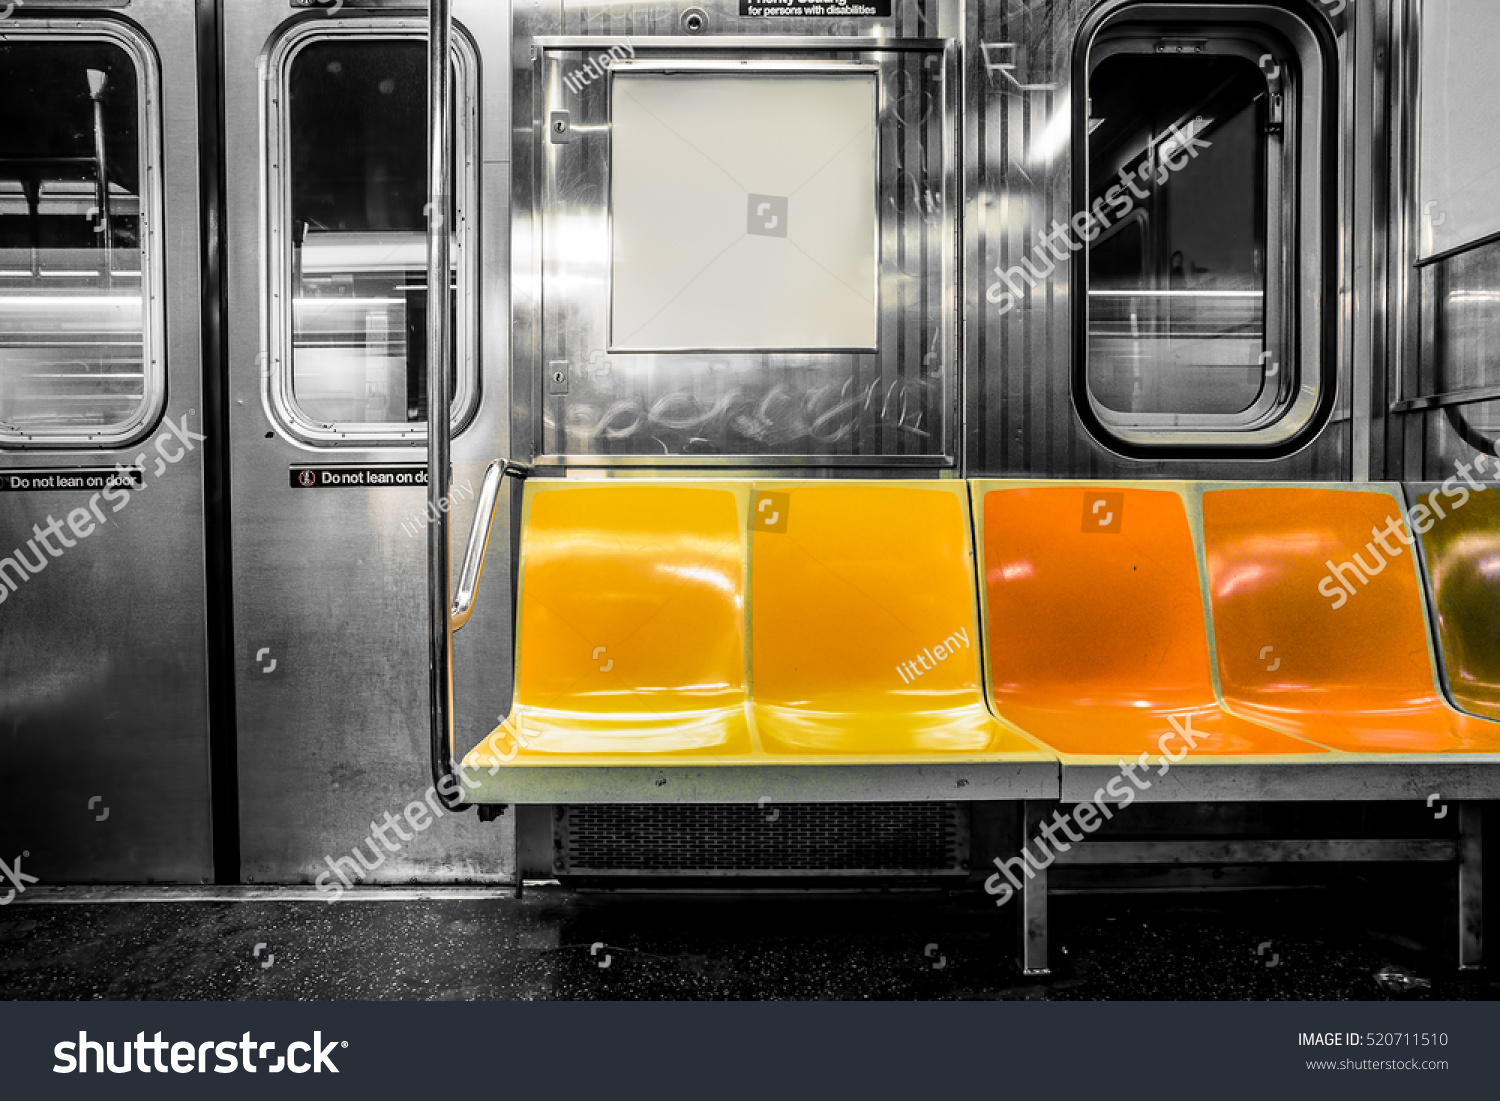 new york city subway car interior stock photo 520711510 shutterstock. Black Bedroom Furniture Sets. Home Design Ideas